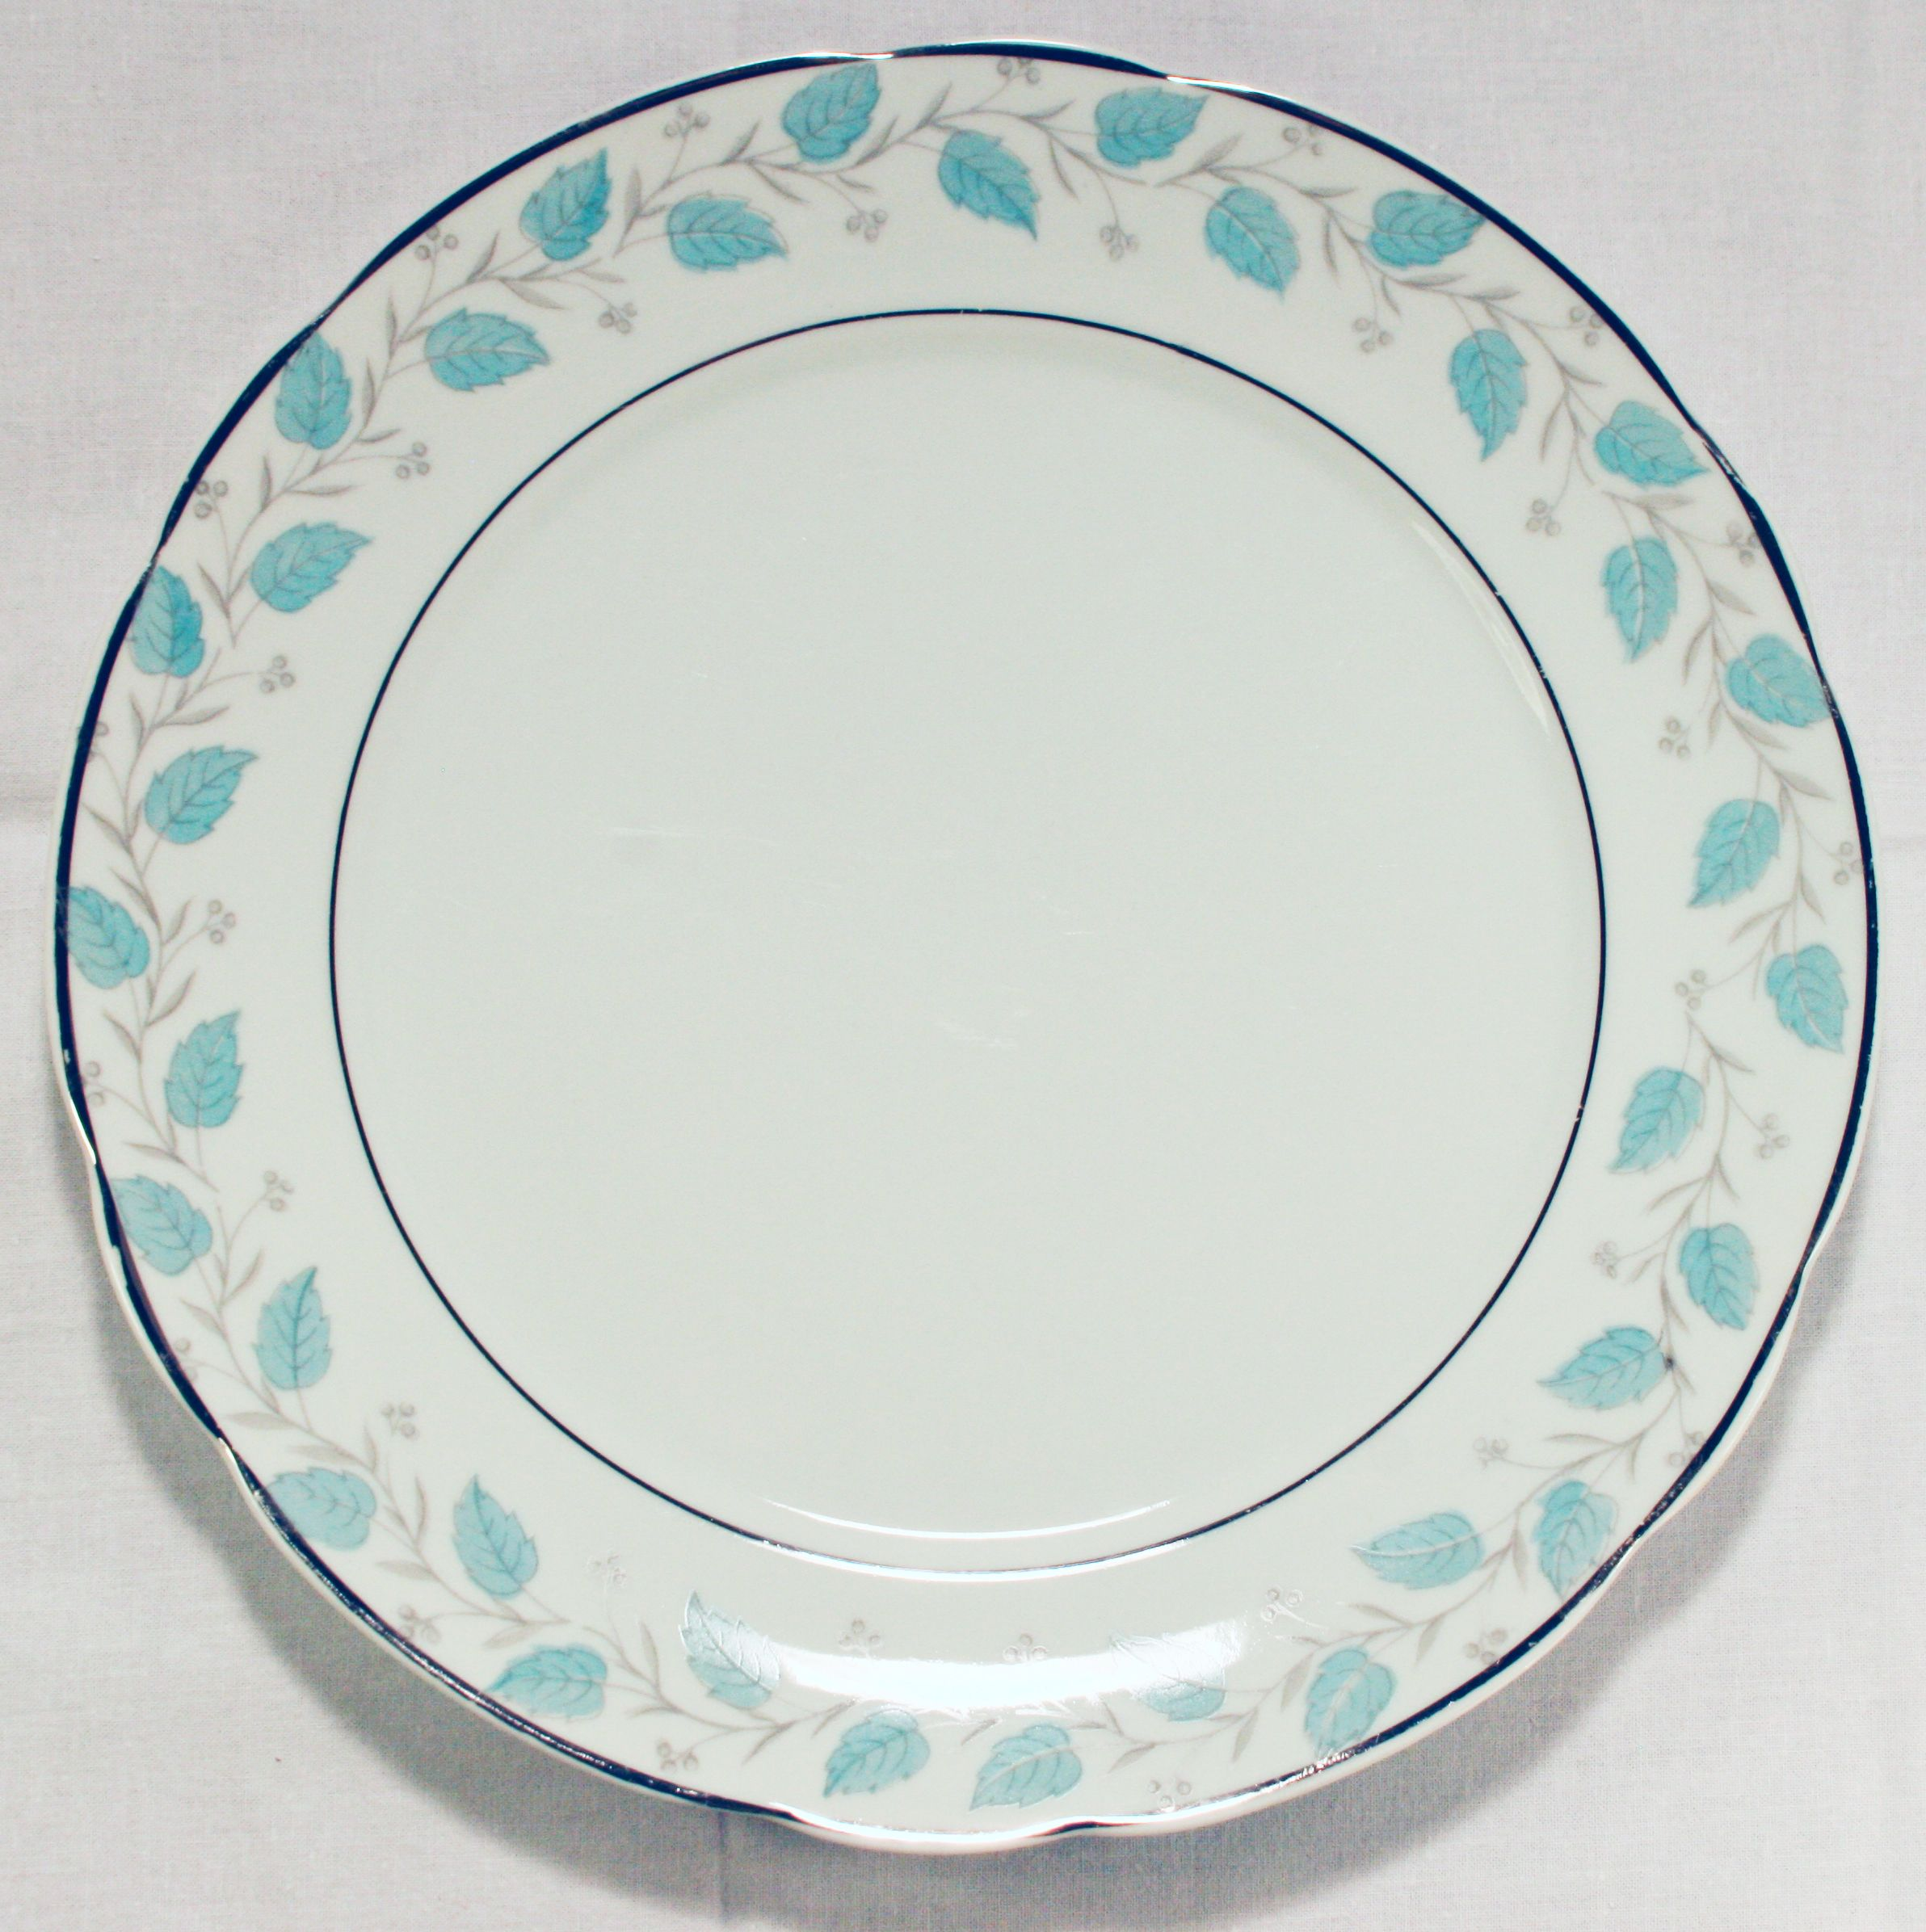 Dinner Plate Model Princeza Isabel Pattern 449 Sl Chantilly